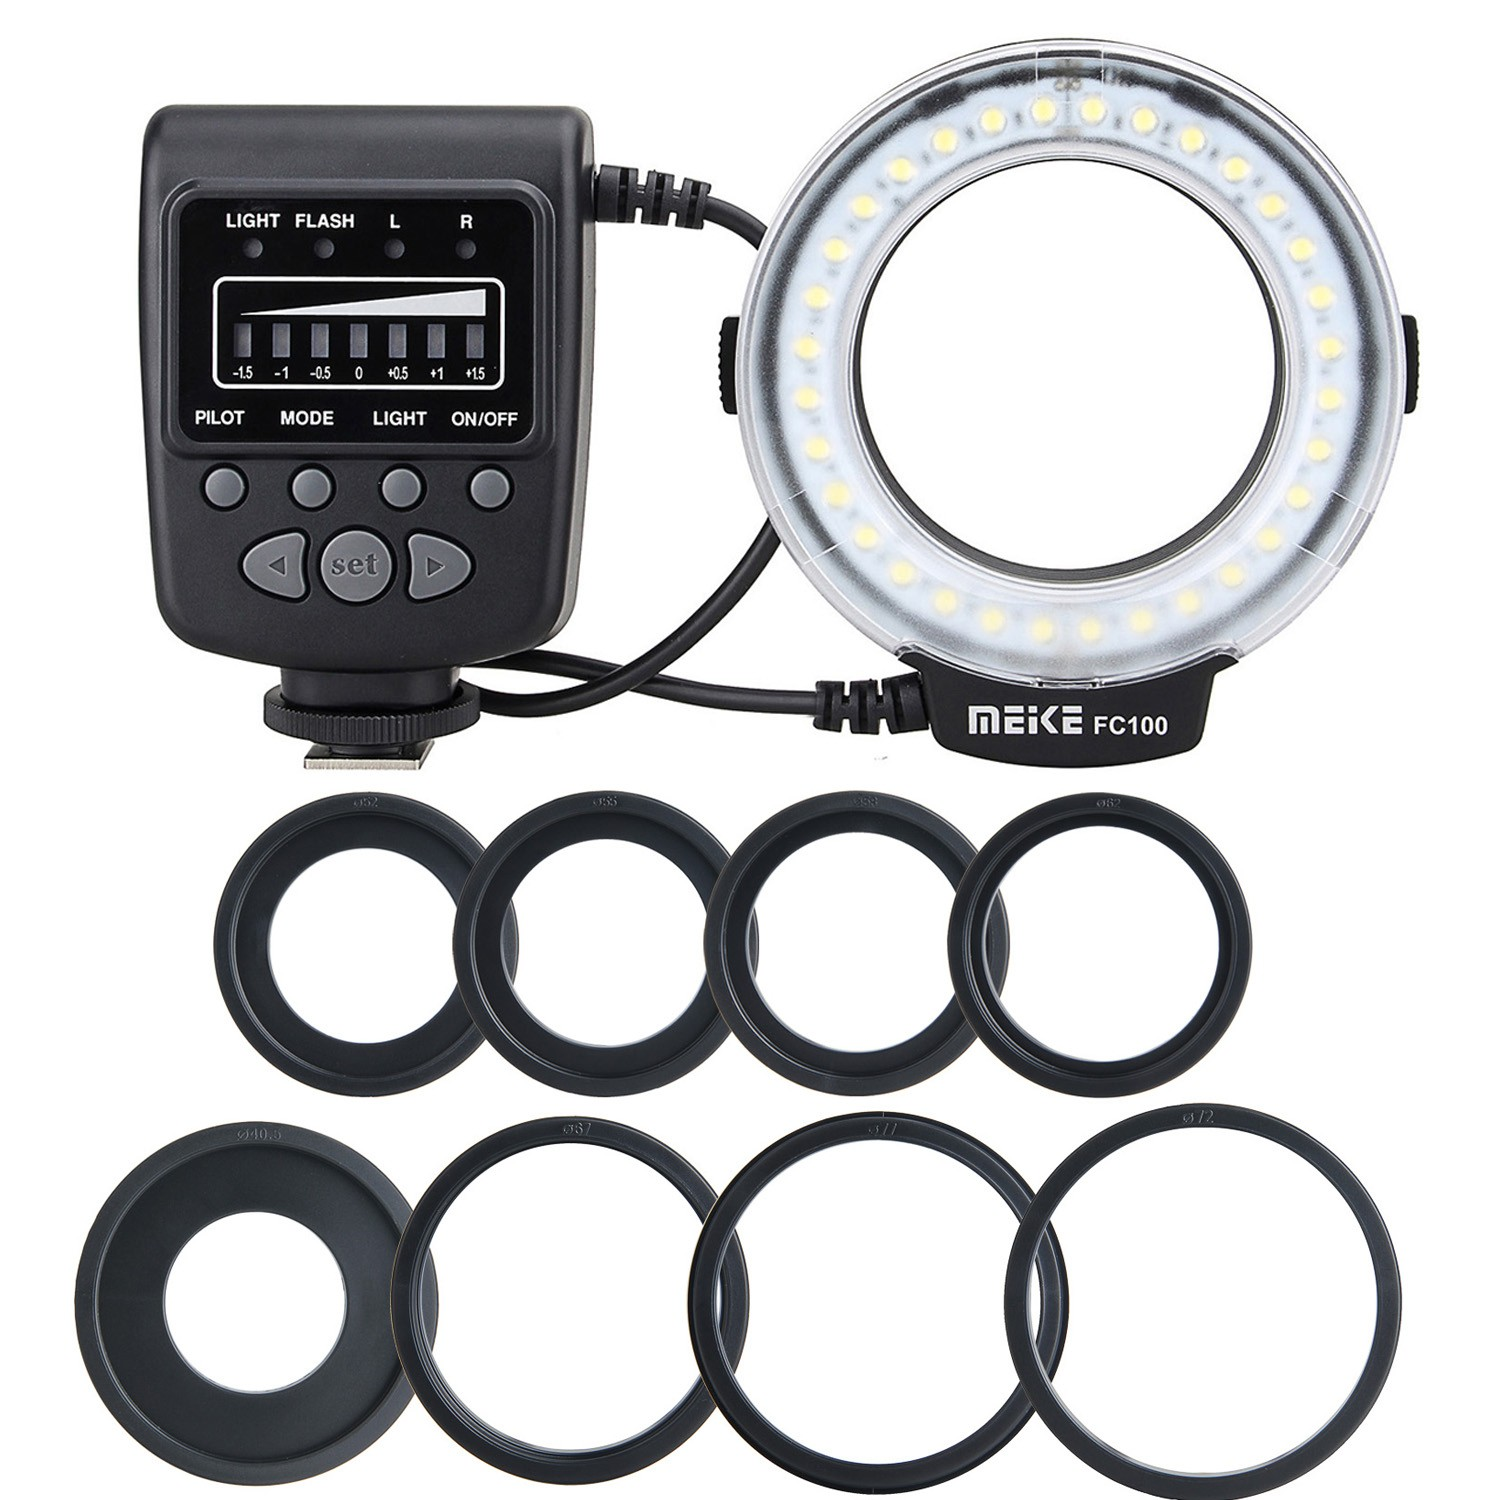 Meike FC 100 FC100 Macro Ring Flash Light for Nikon D7000 D5100 D90 D80s D70 series